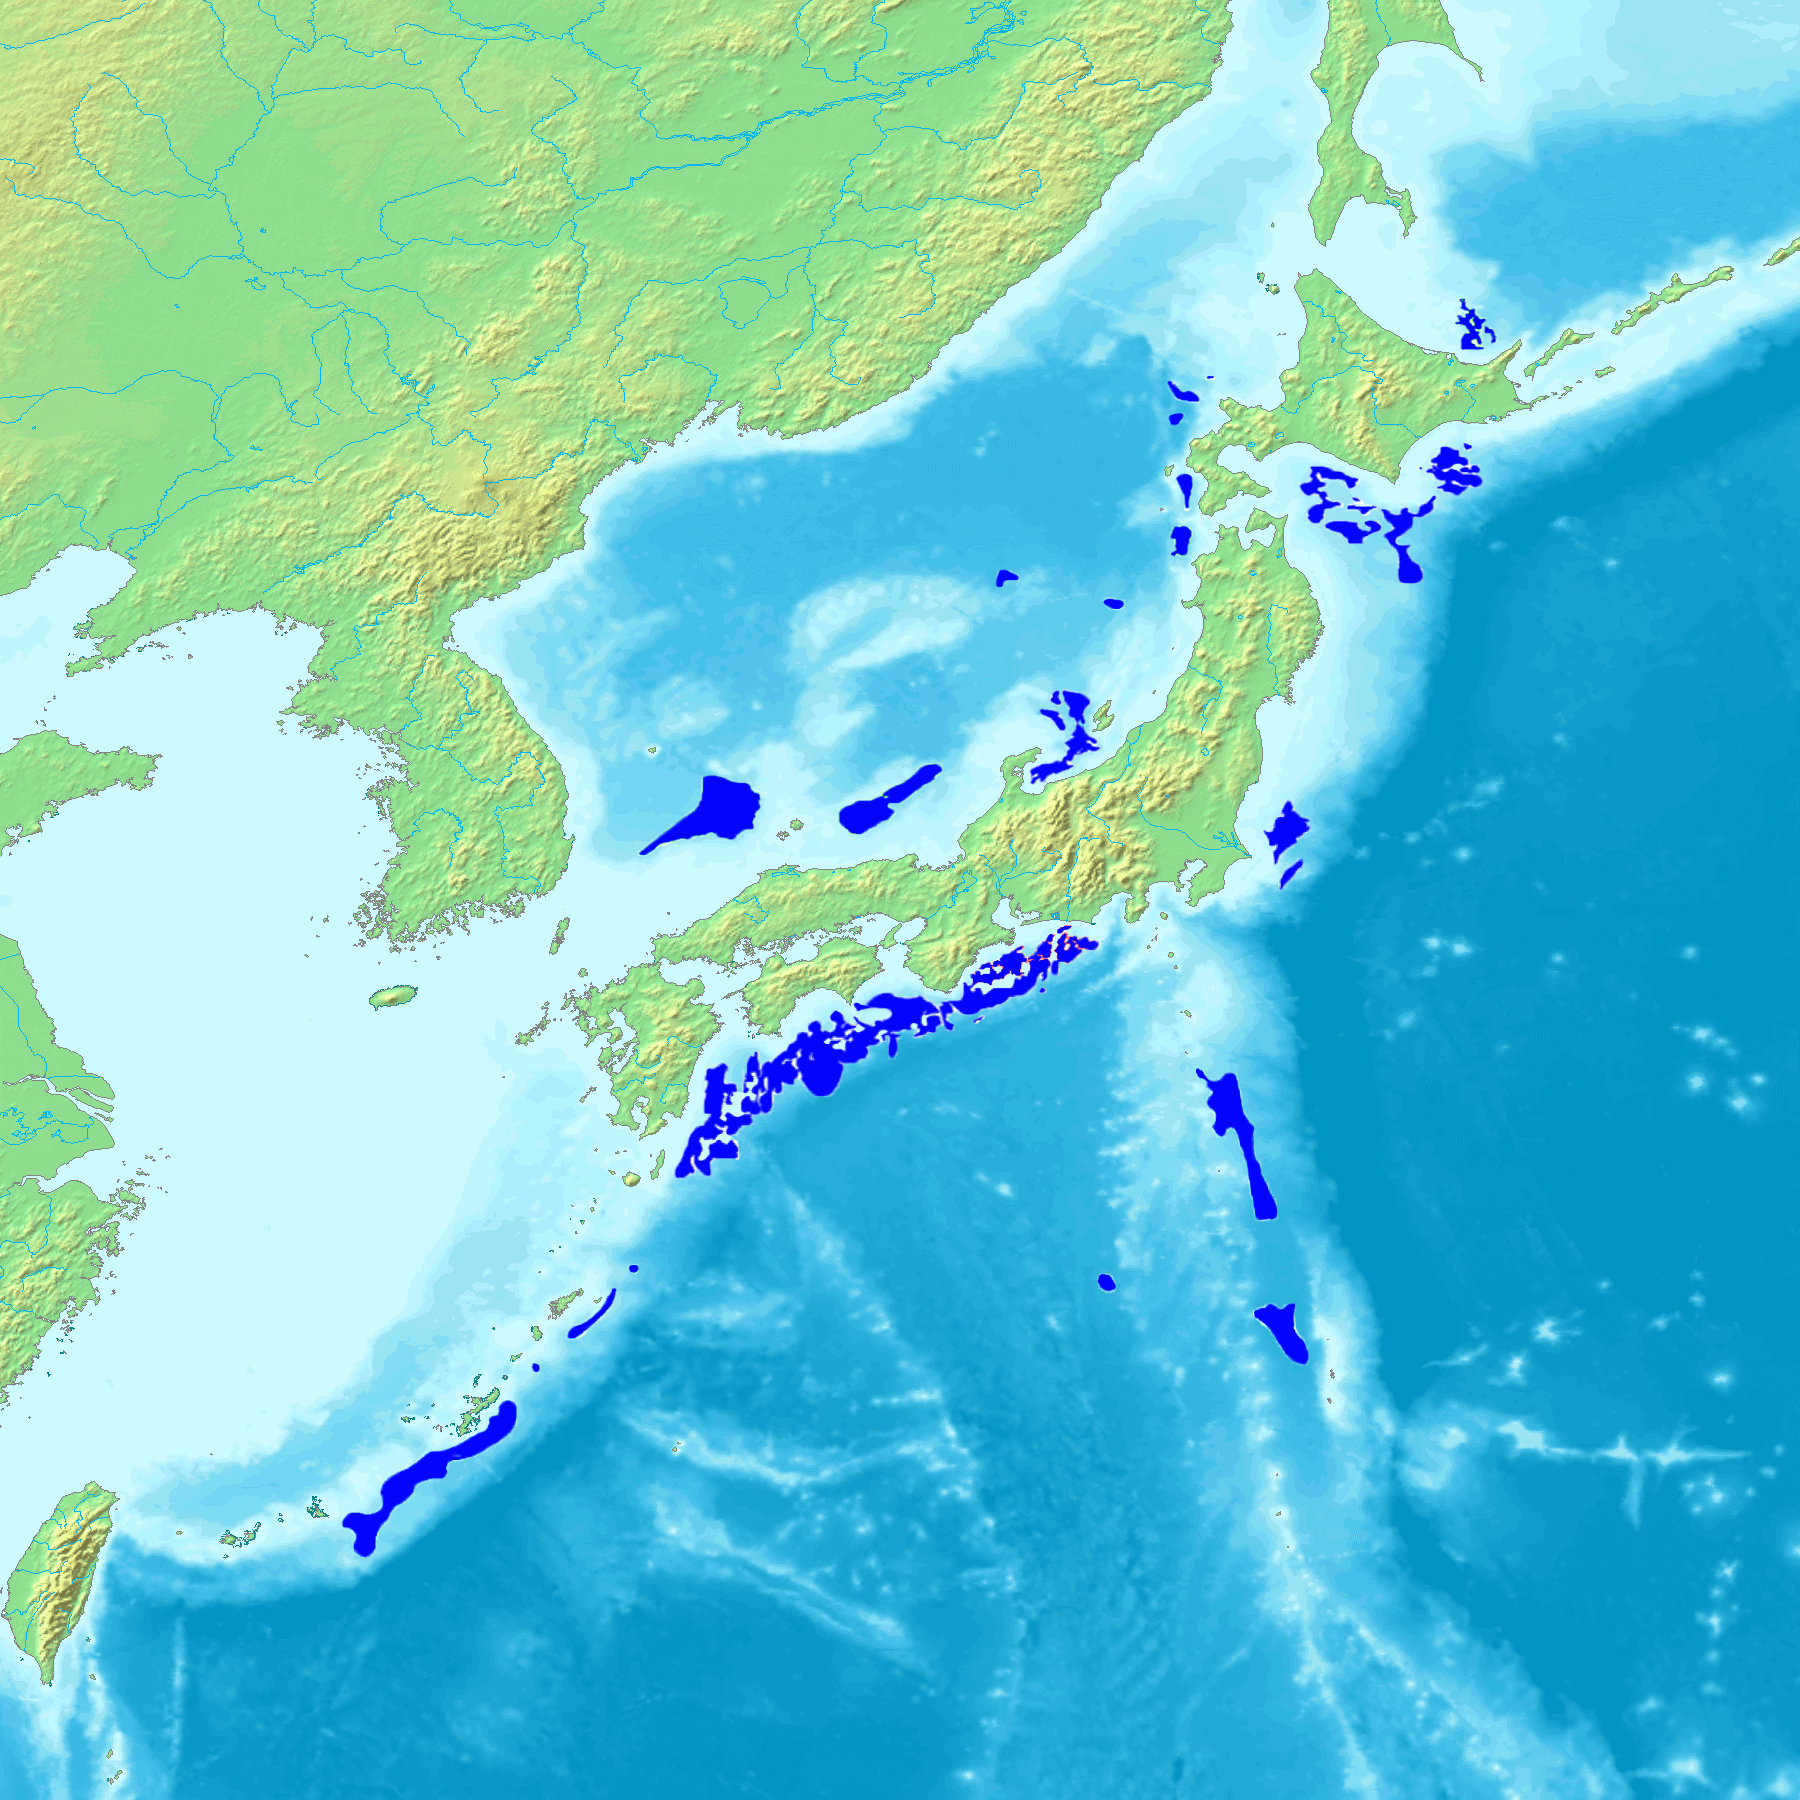 File:Methane hydrate around Japan Ilands.PNG